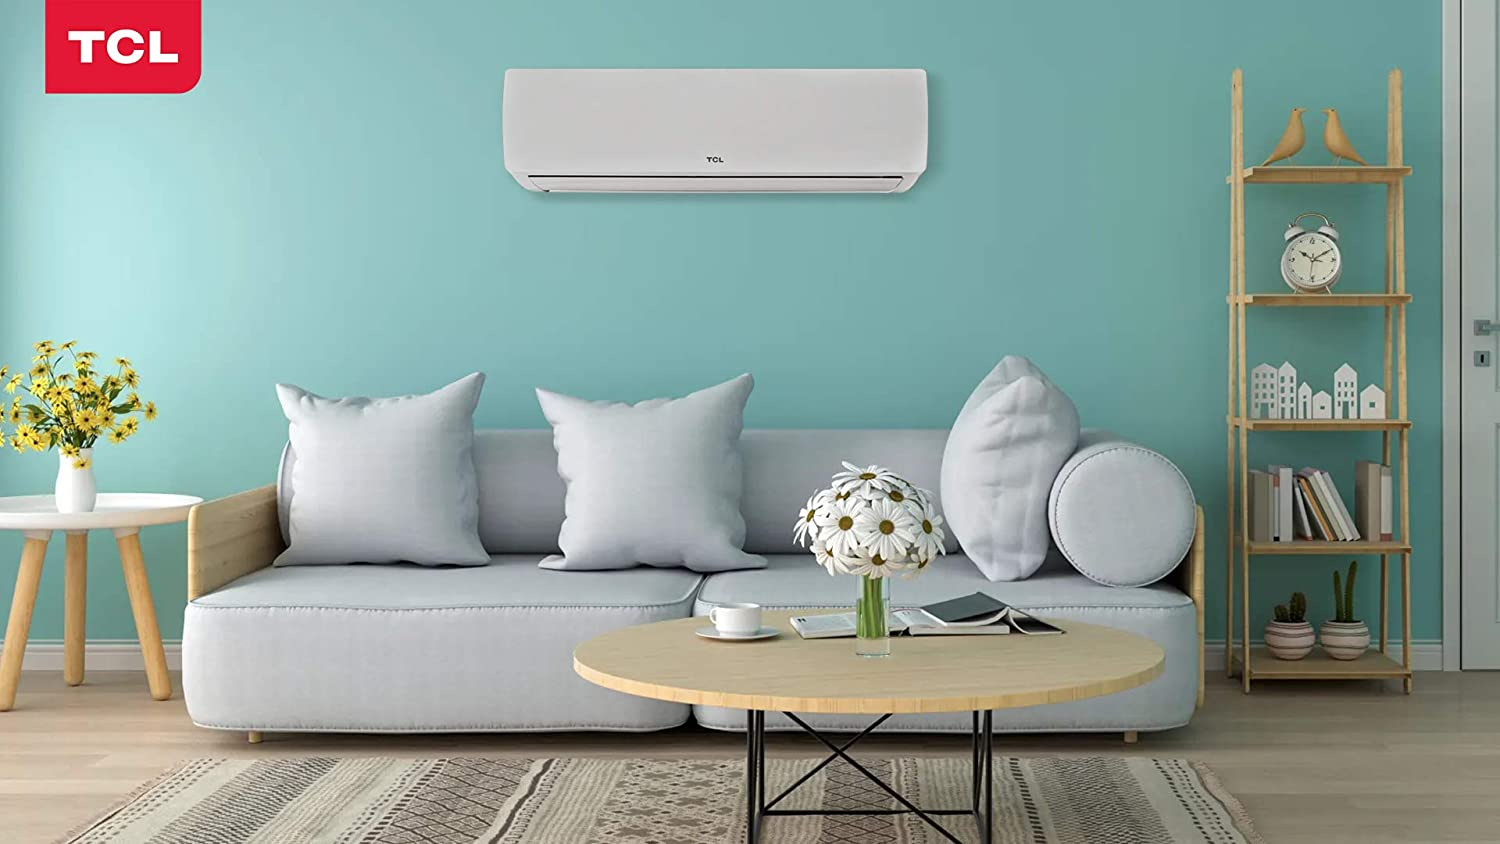 TCL Air Conditioners